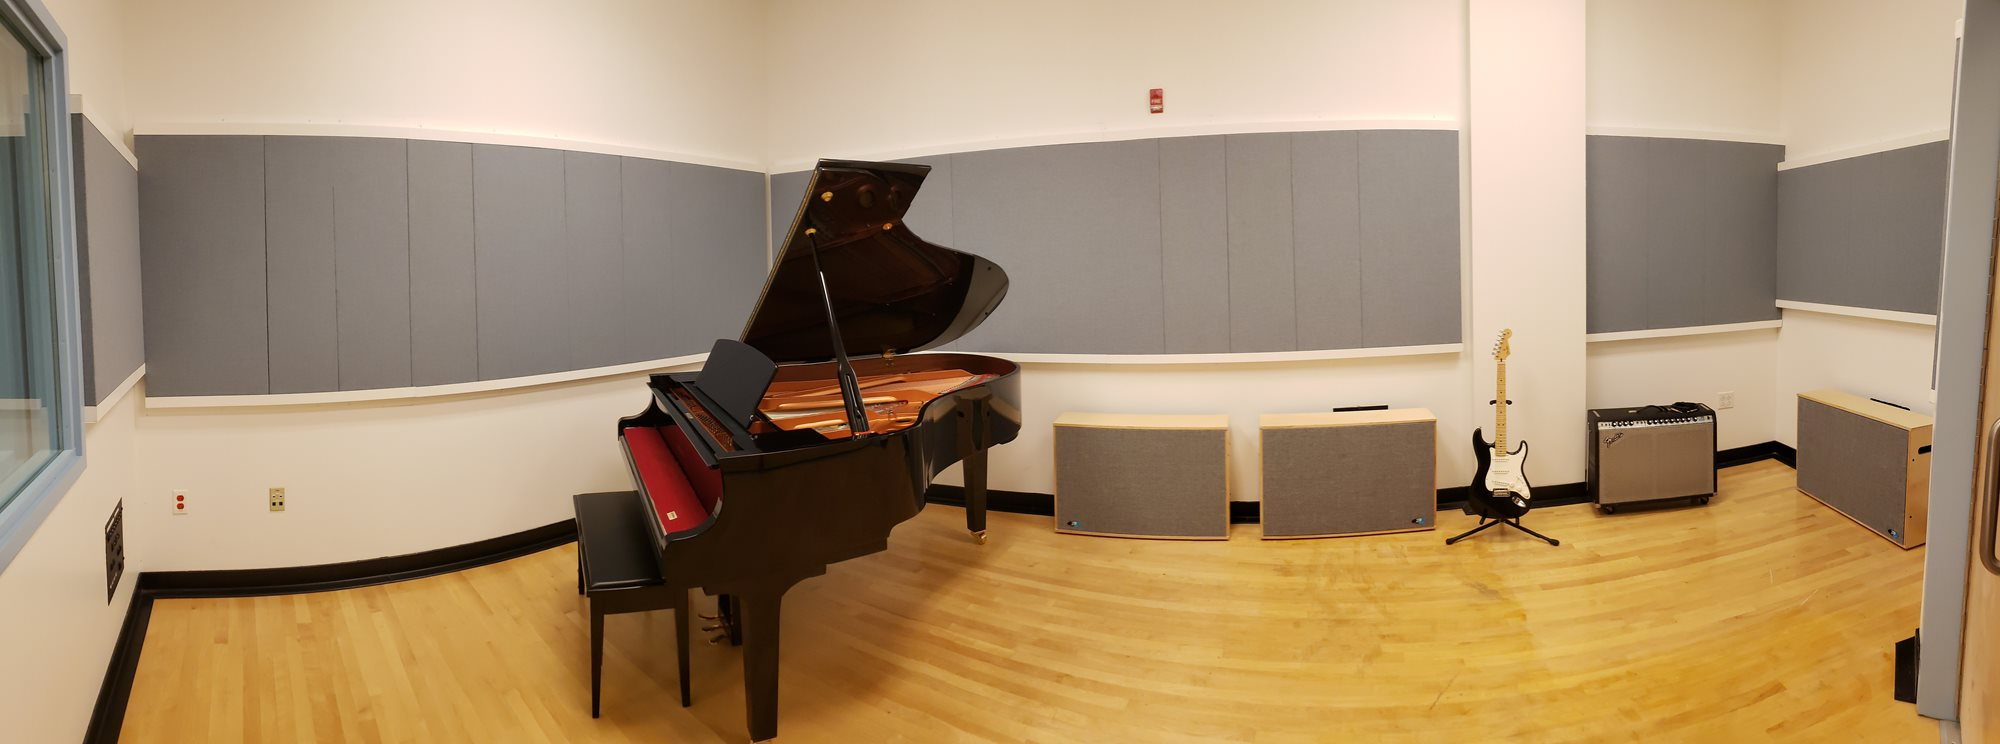 A panoramic display of our tracking room containing an open baby grand piano, a guitar, and an amplifier.